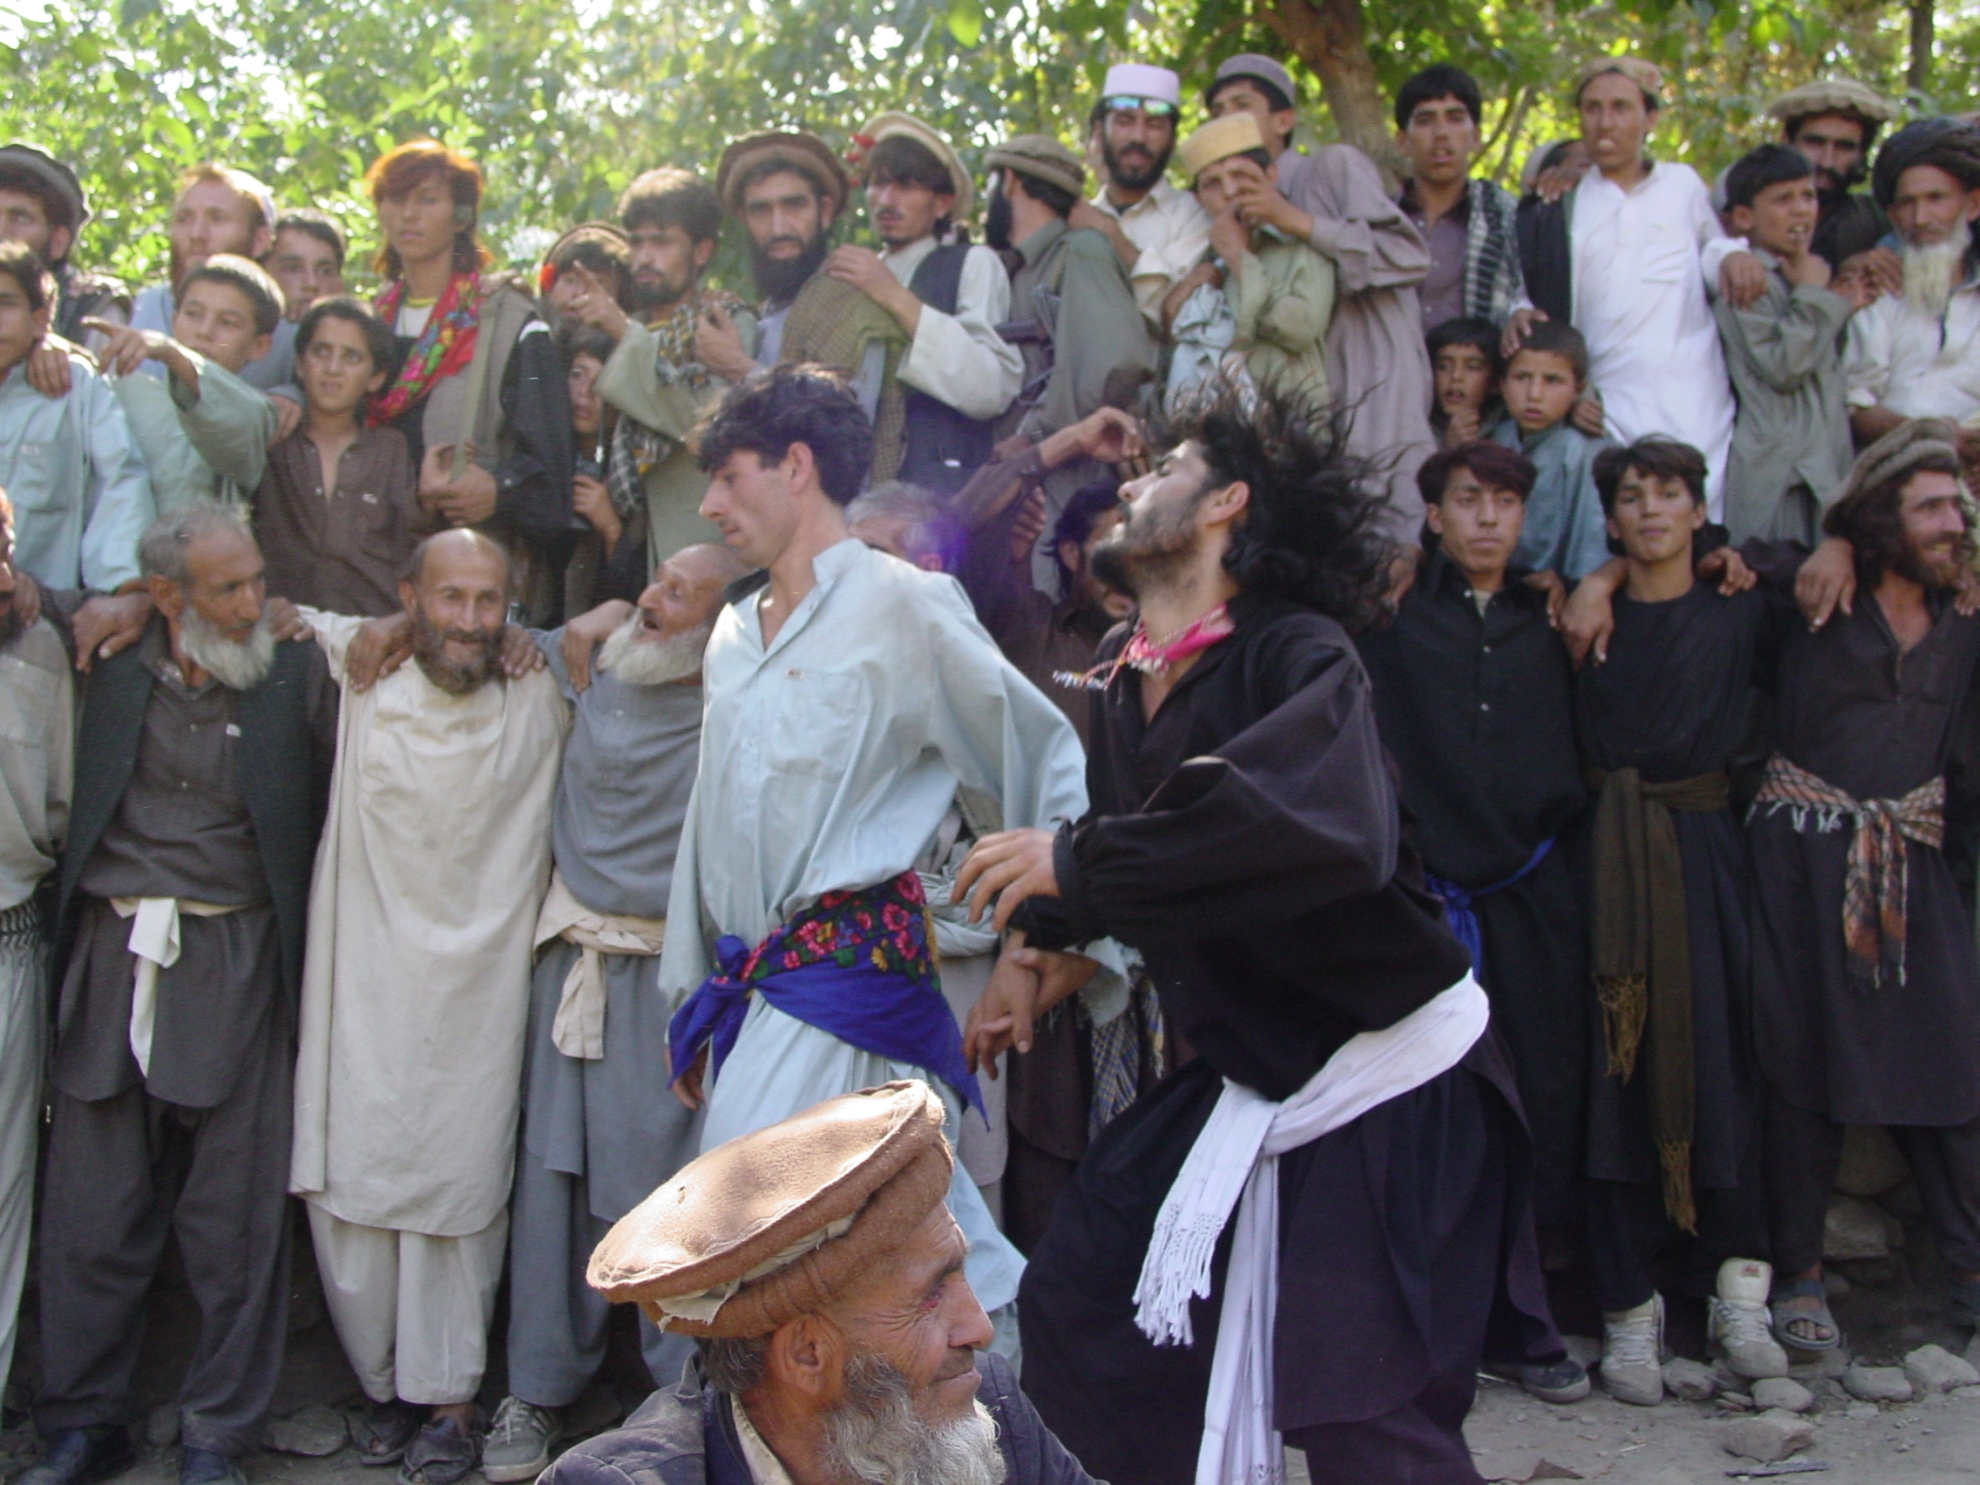 Singing and dancing were banned under the Taliban. Today, however, you see it at most weddings in the countryside. The man in black is dancing in a state of trance. Photo: Jens Kjær Jensen, 2003